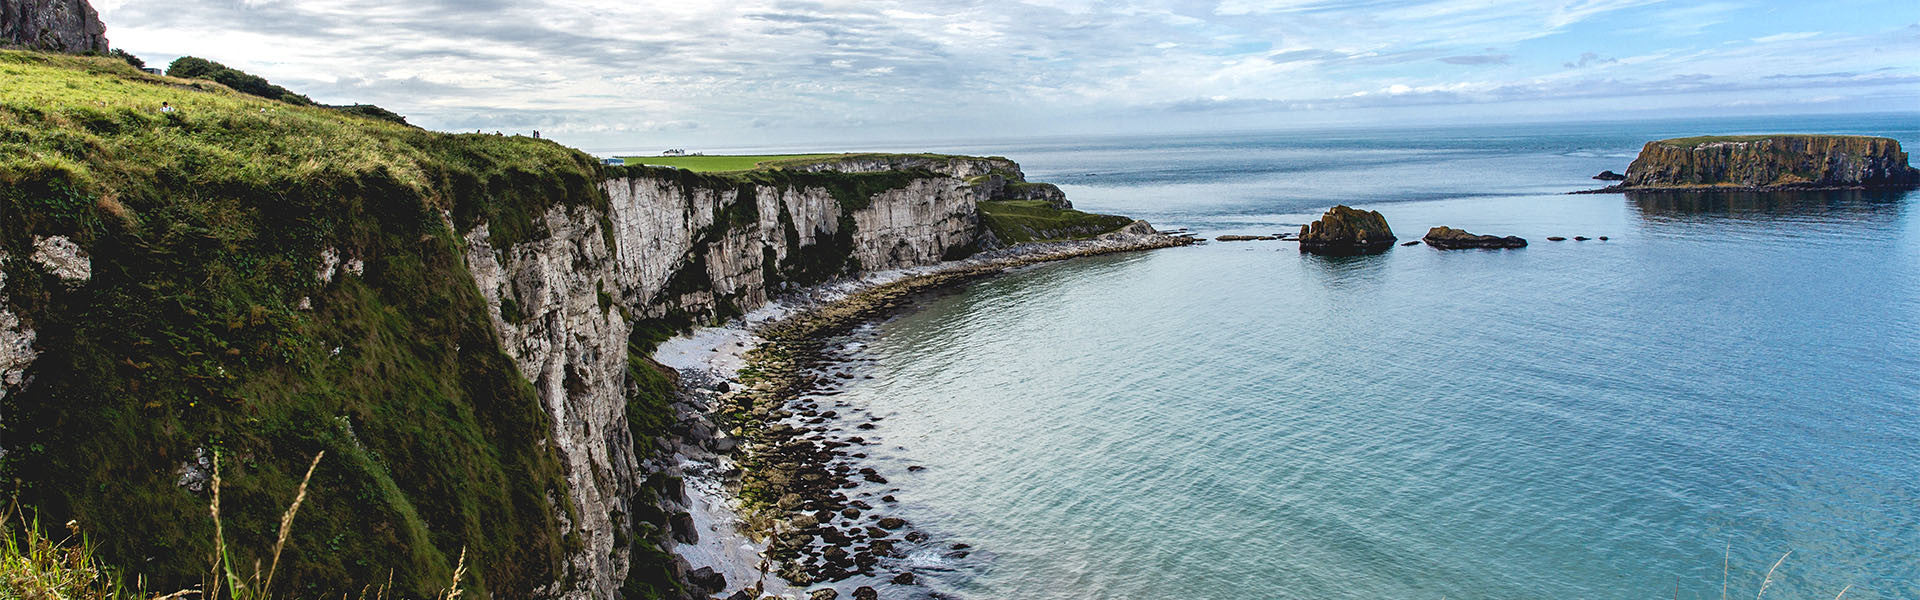 Irish Sea cliffs and Real Irish Travel Text